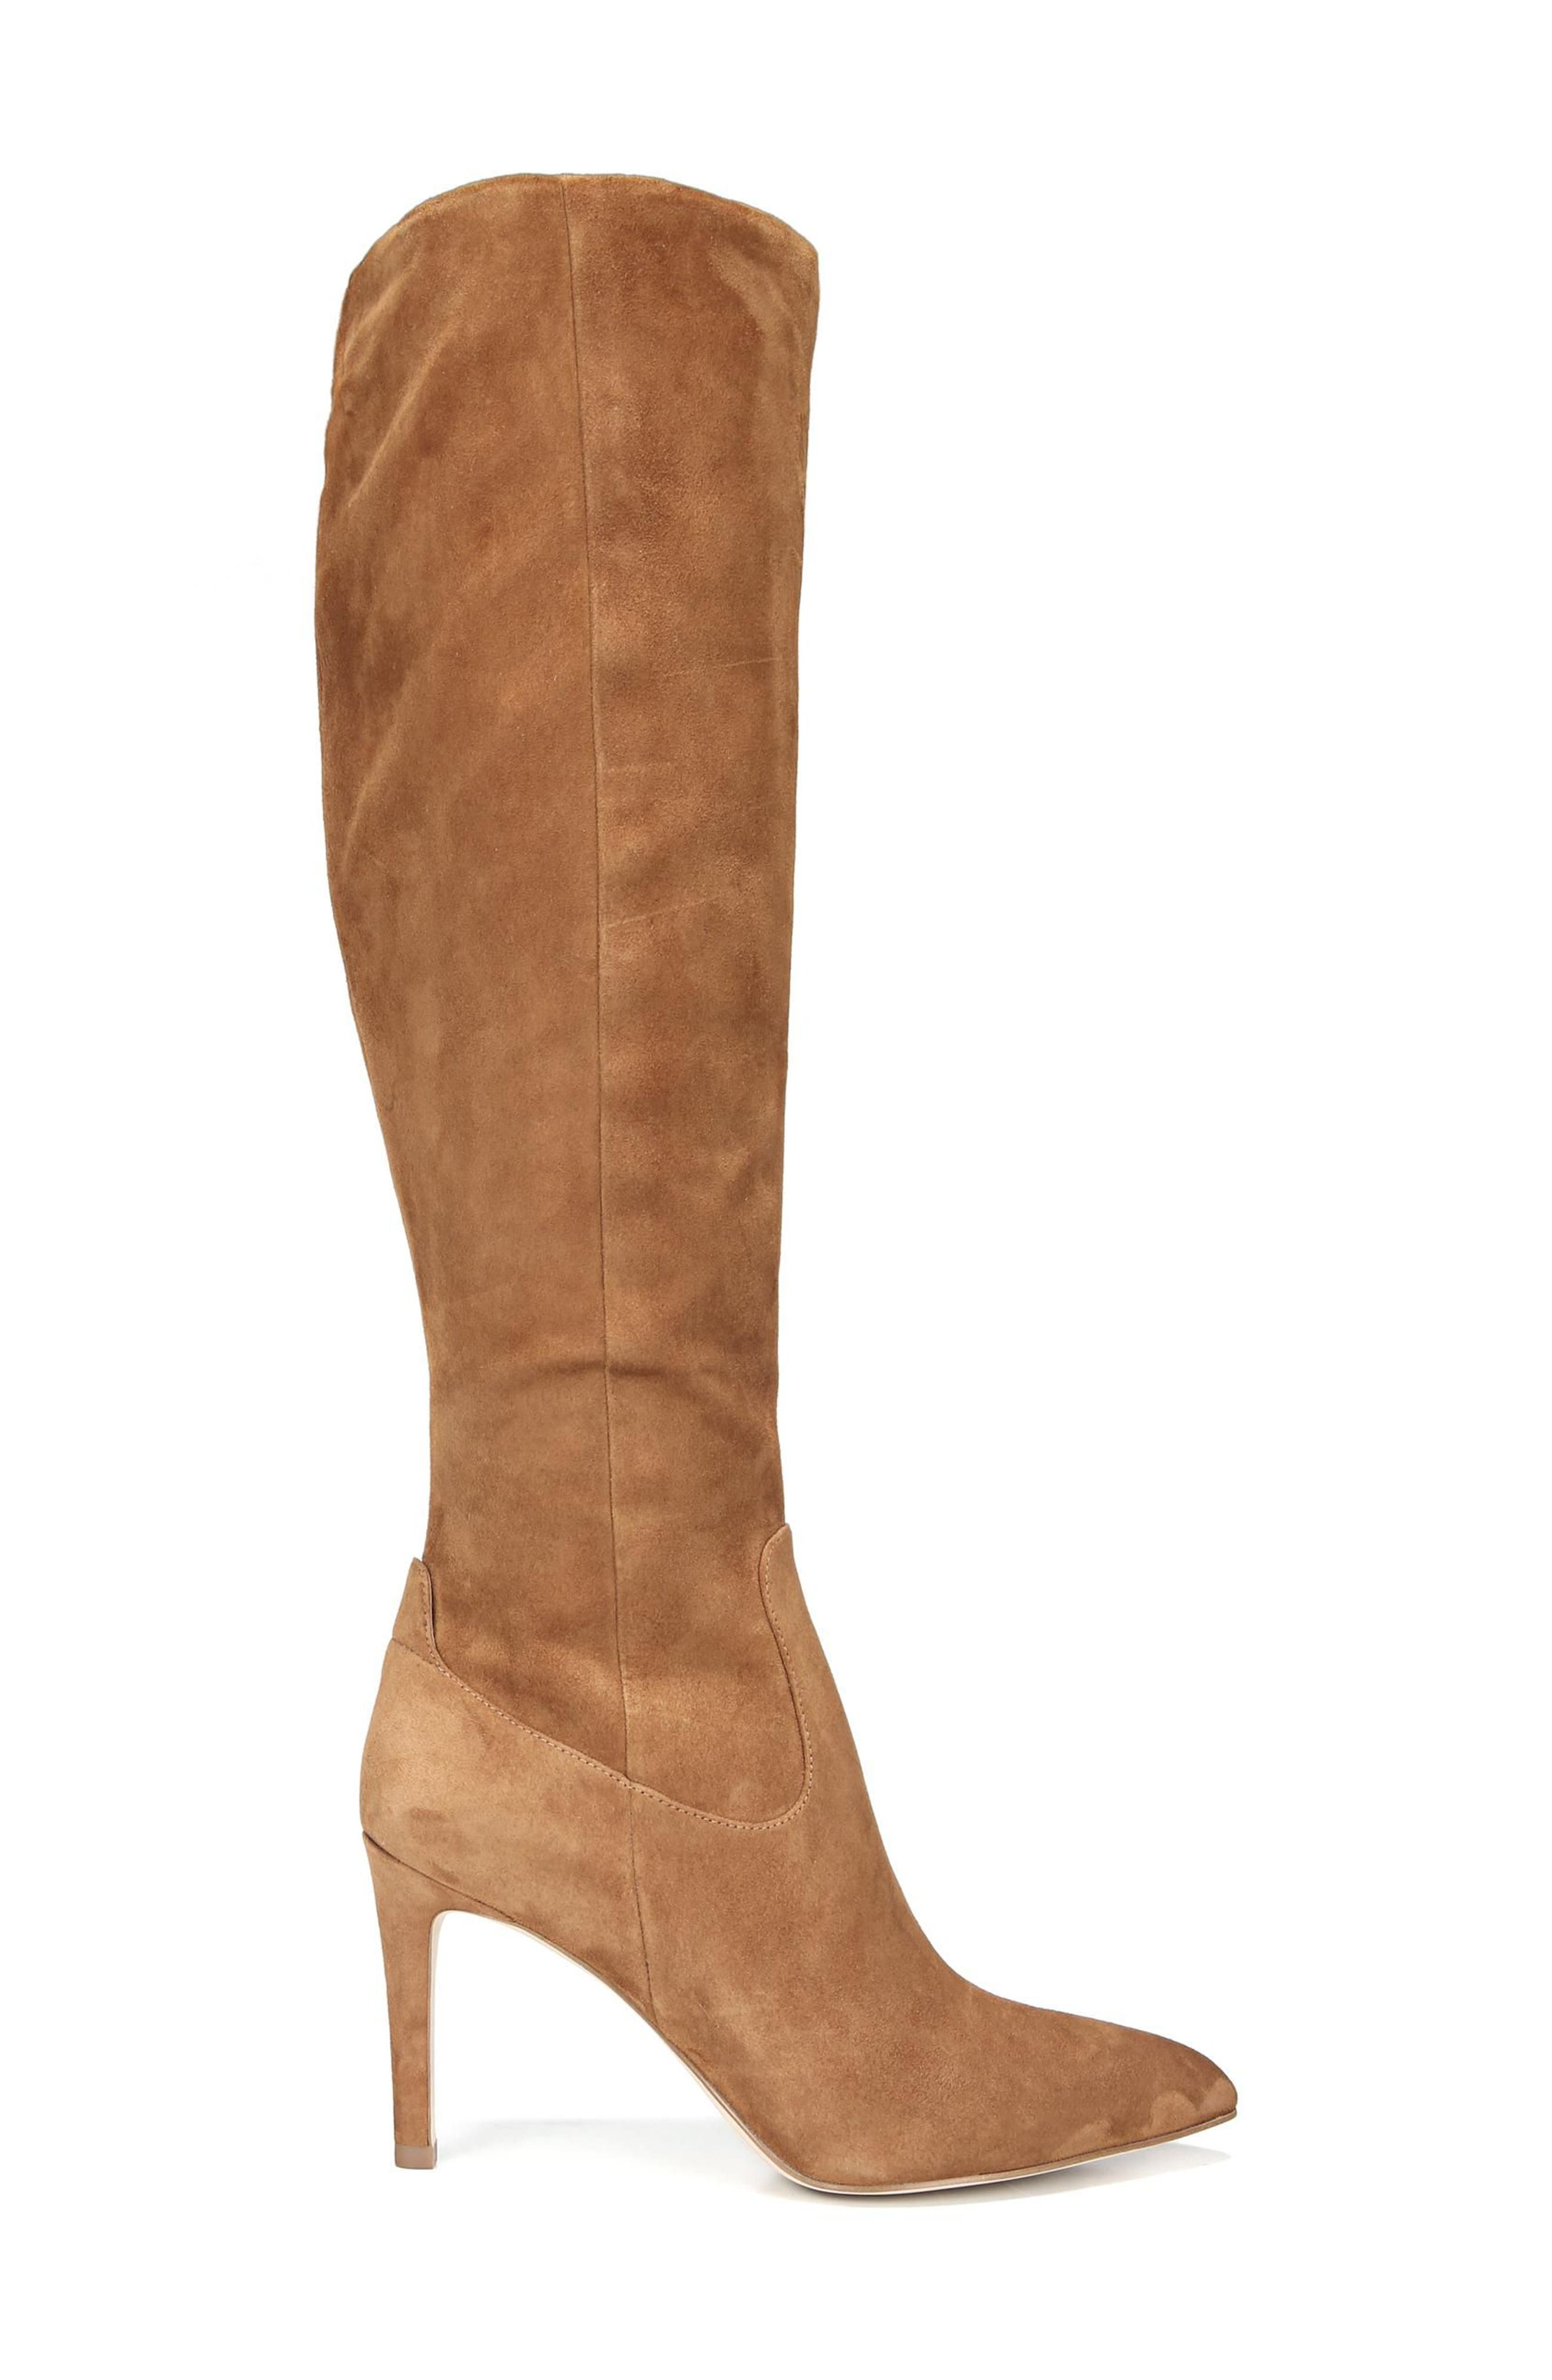 Olencia Knee High Boot,                             Alternate thumbnail 3, color,                             Luggage Suede